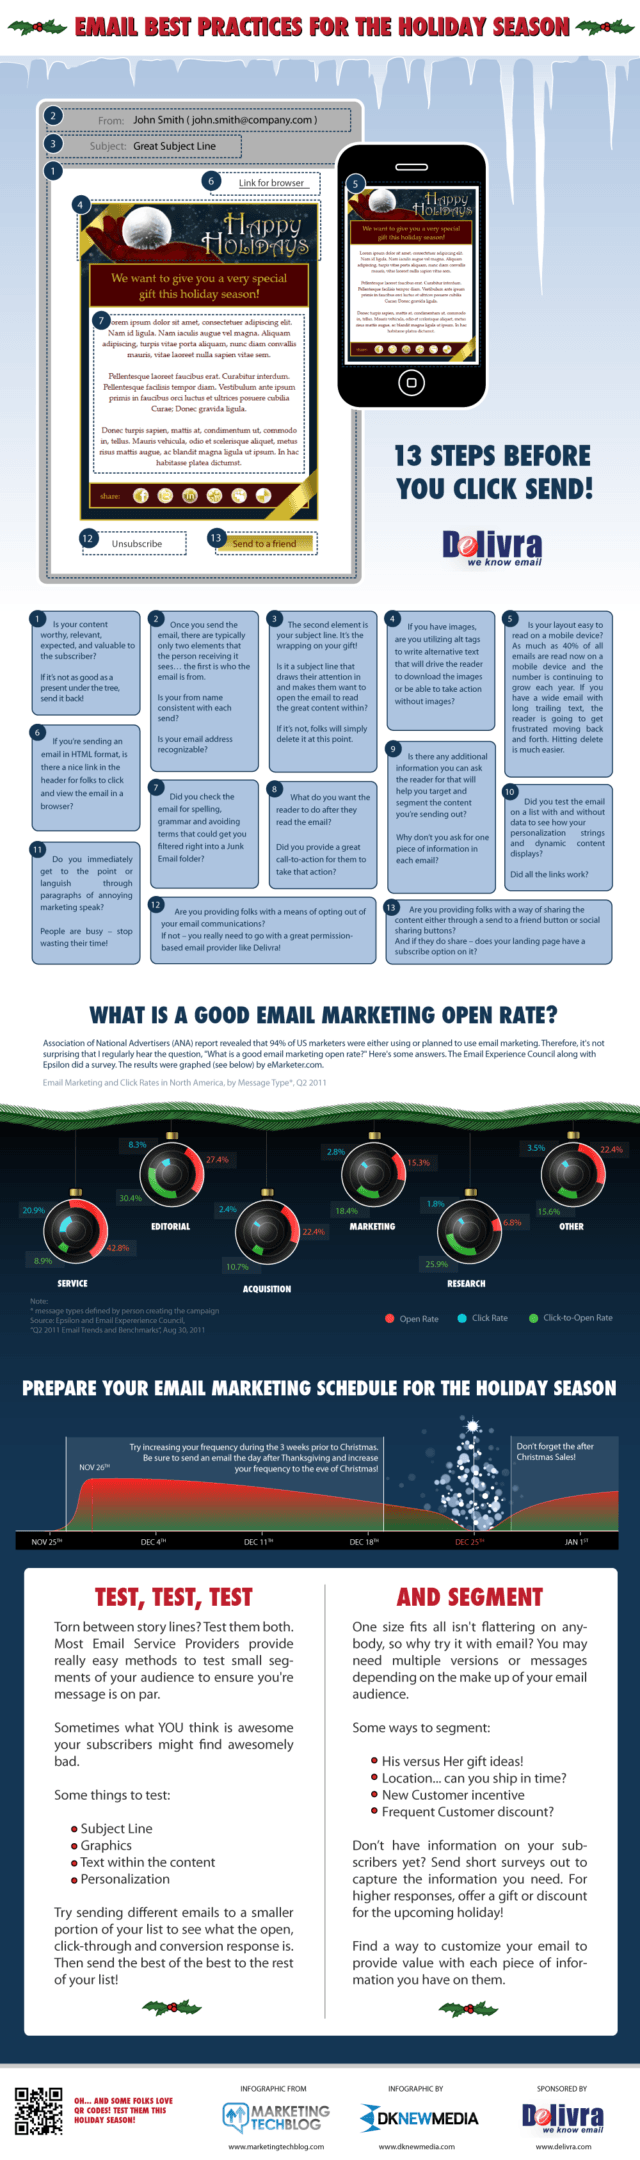 Email Practices Infographic 1000